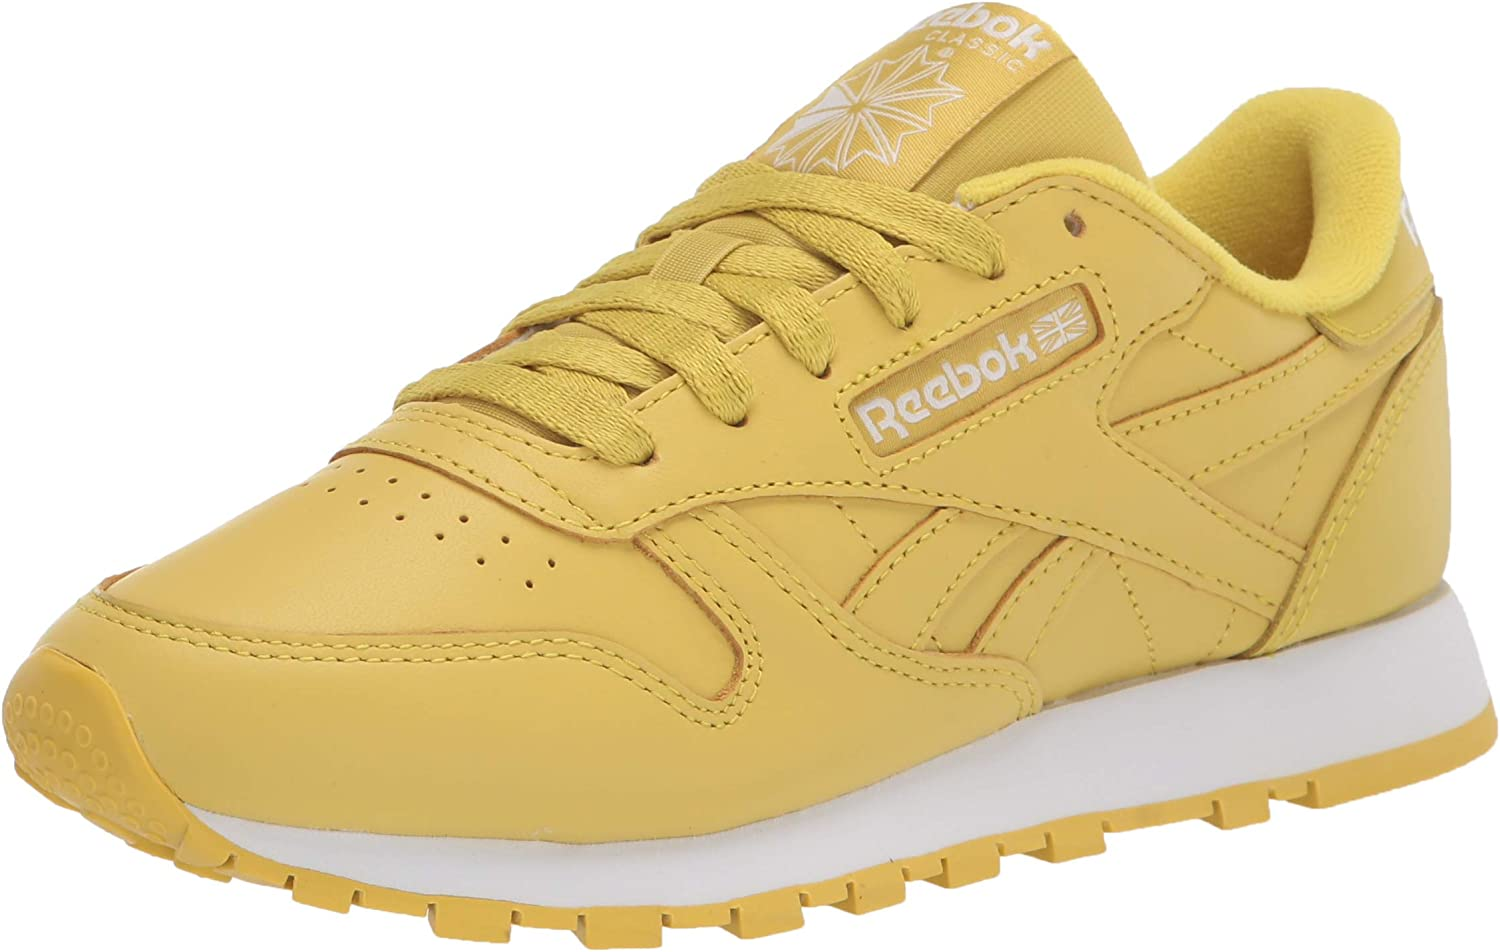 Reebok Women's Classic Leather Max 58% OFF Max 83% OFF Sneaker